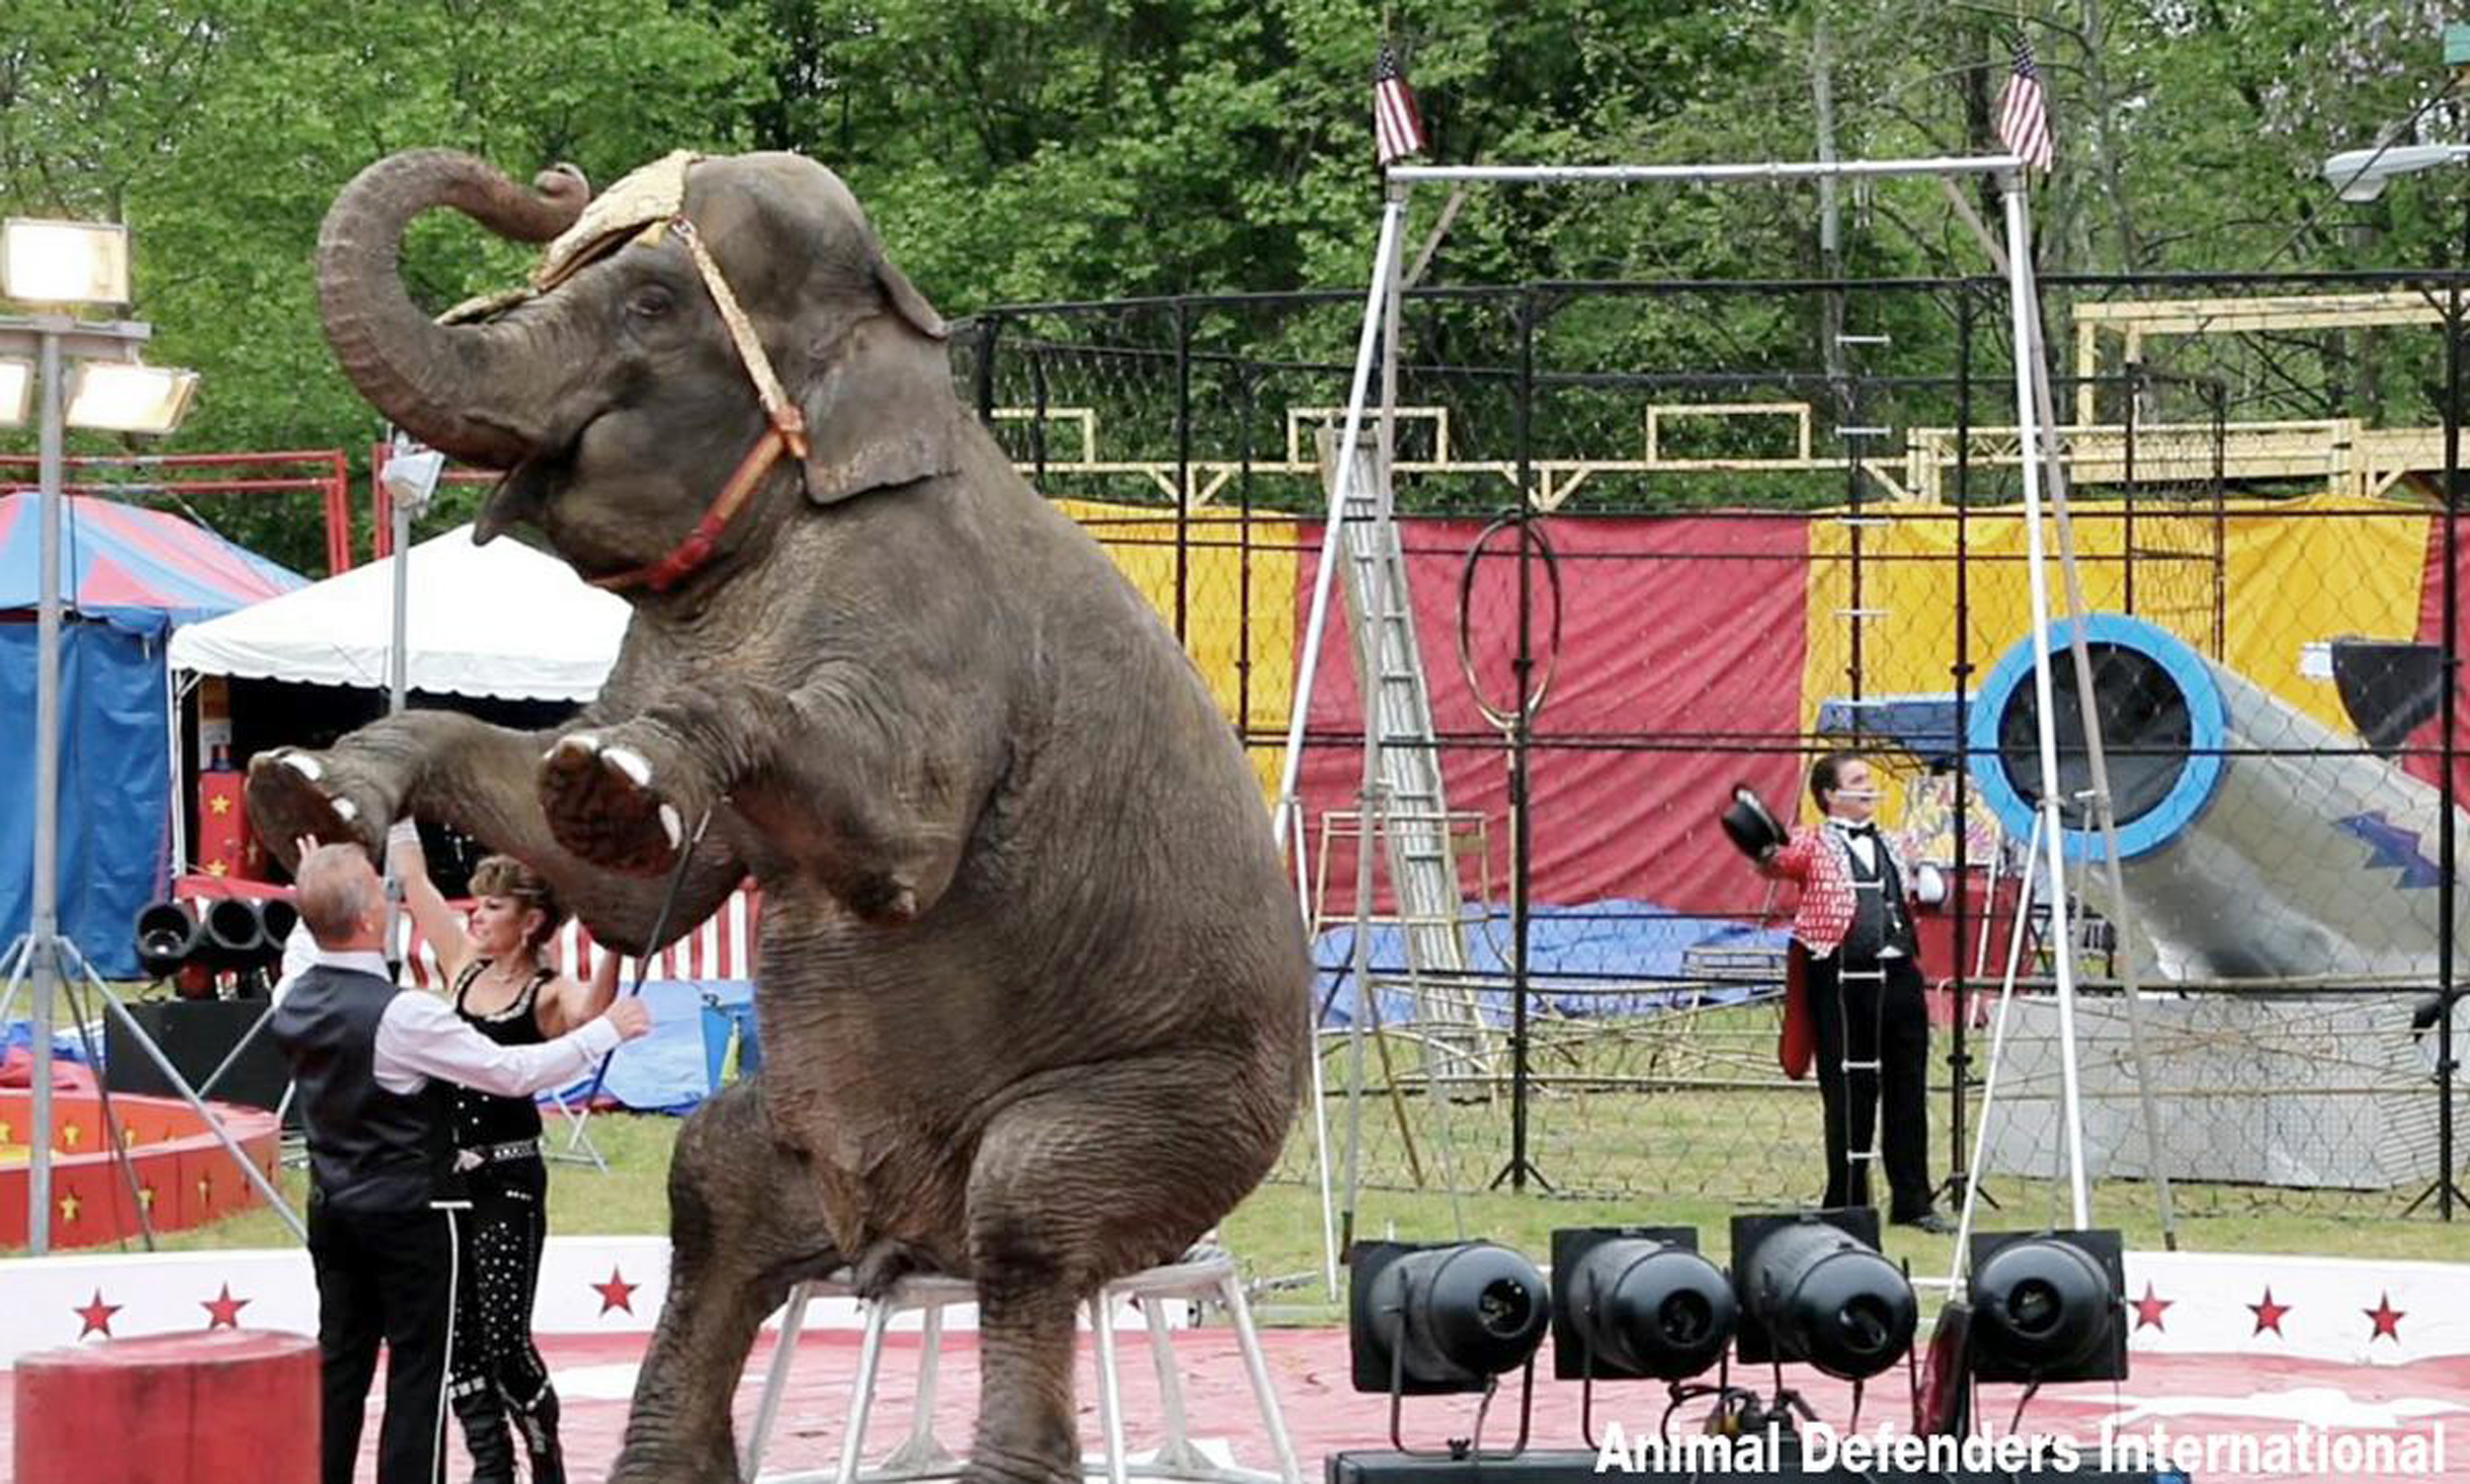 Elephants Deserve Legal 'Personhood,' New Lawsuit Argues